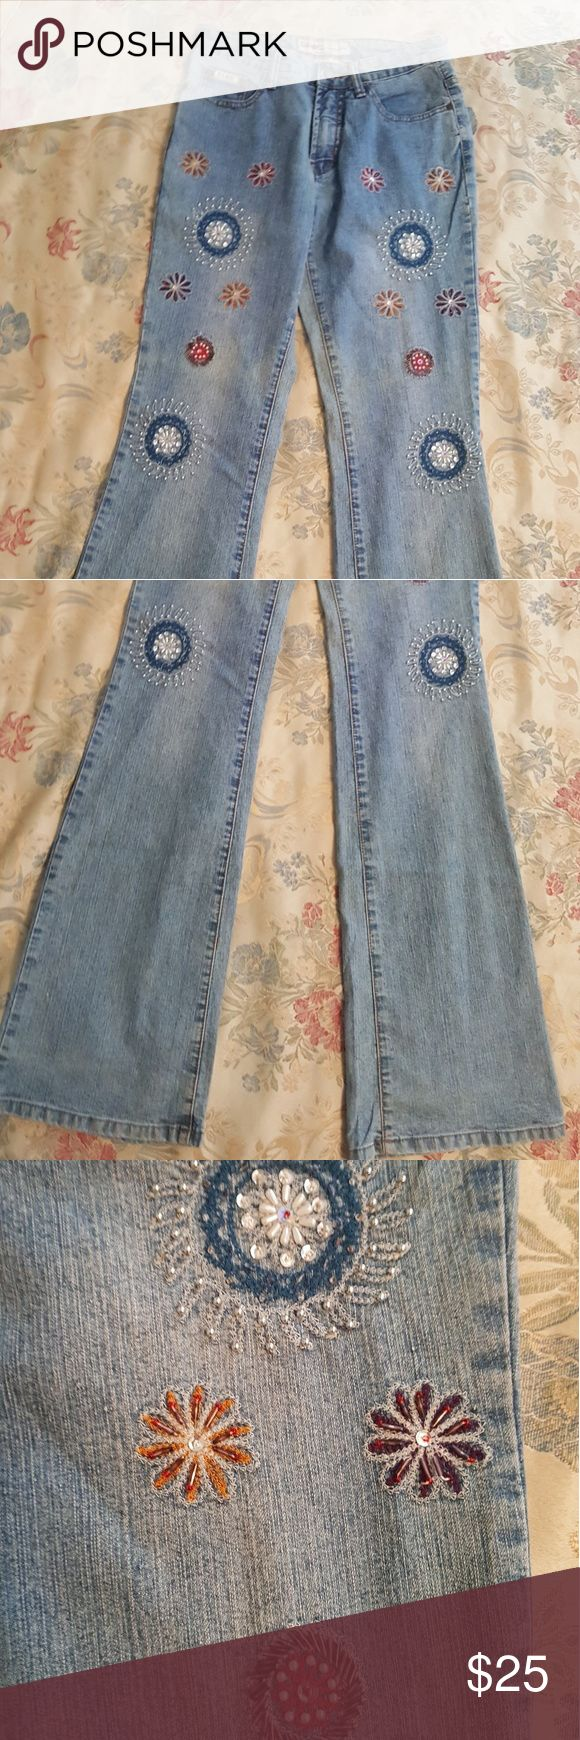 Daniel Original Design Jeans Stone washed Embroidered Sequin Jeans Daniel Jeans Pants Boot Cut & Flare